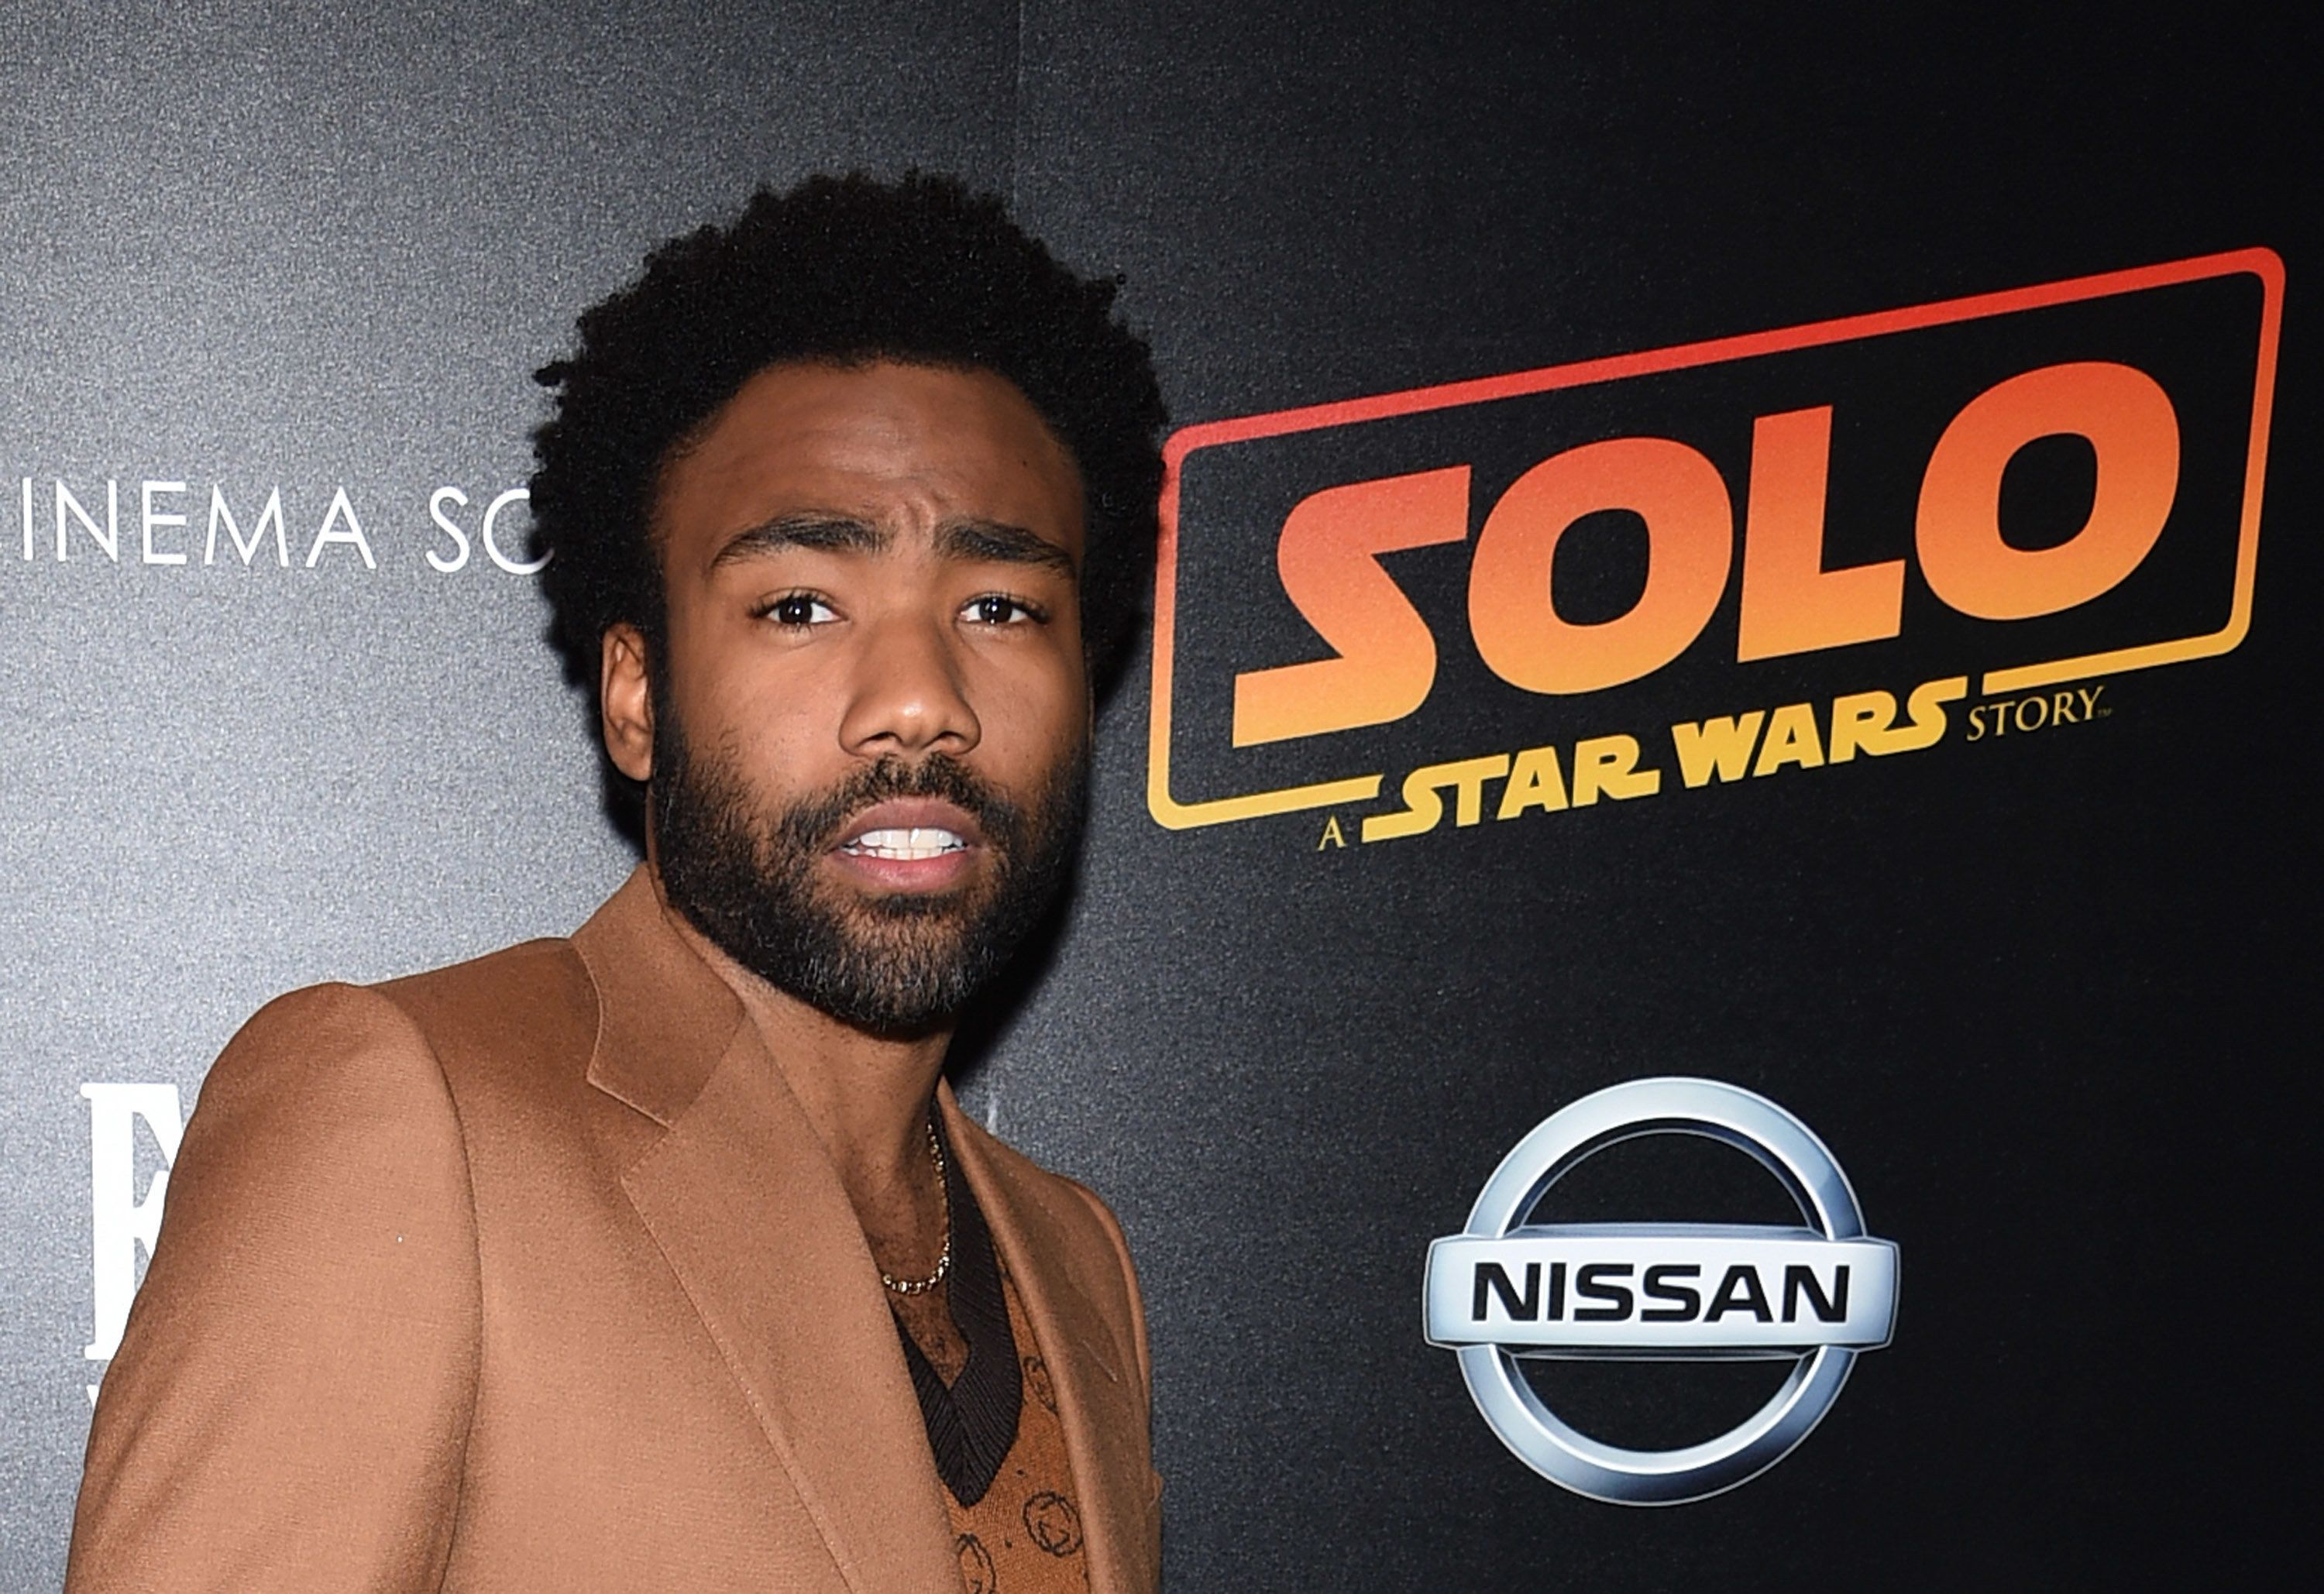 NEW YORK, NY - MAY 21:  Donald Glover attends a screening of 'Solo: A Star Wars Story' hosted by The Cinema Society with Nissan & FIJI Water at SVA Theater on May 21, 2018 in New York City.  (Photo by Dimitrios Kambouris/WireImage)